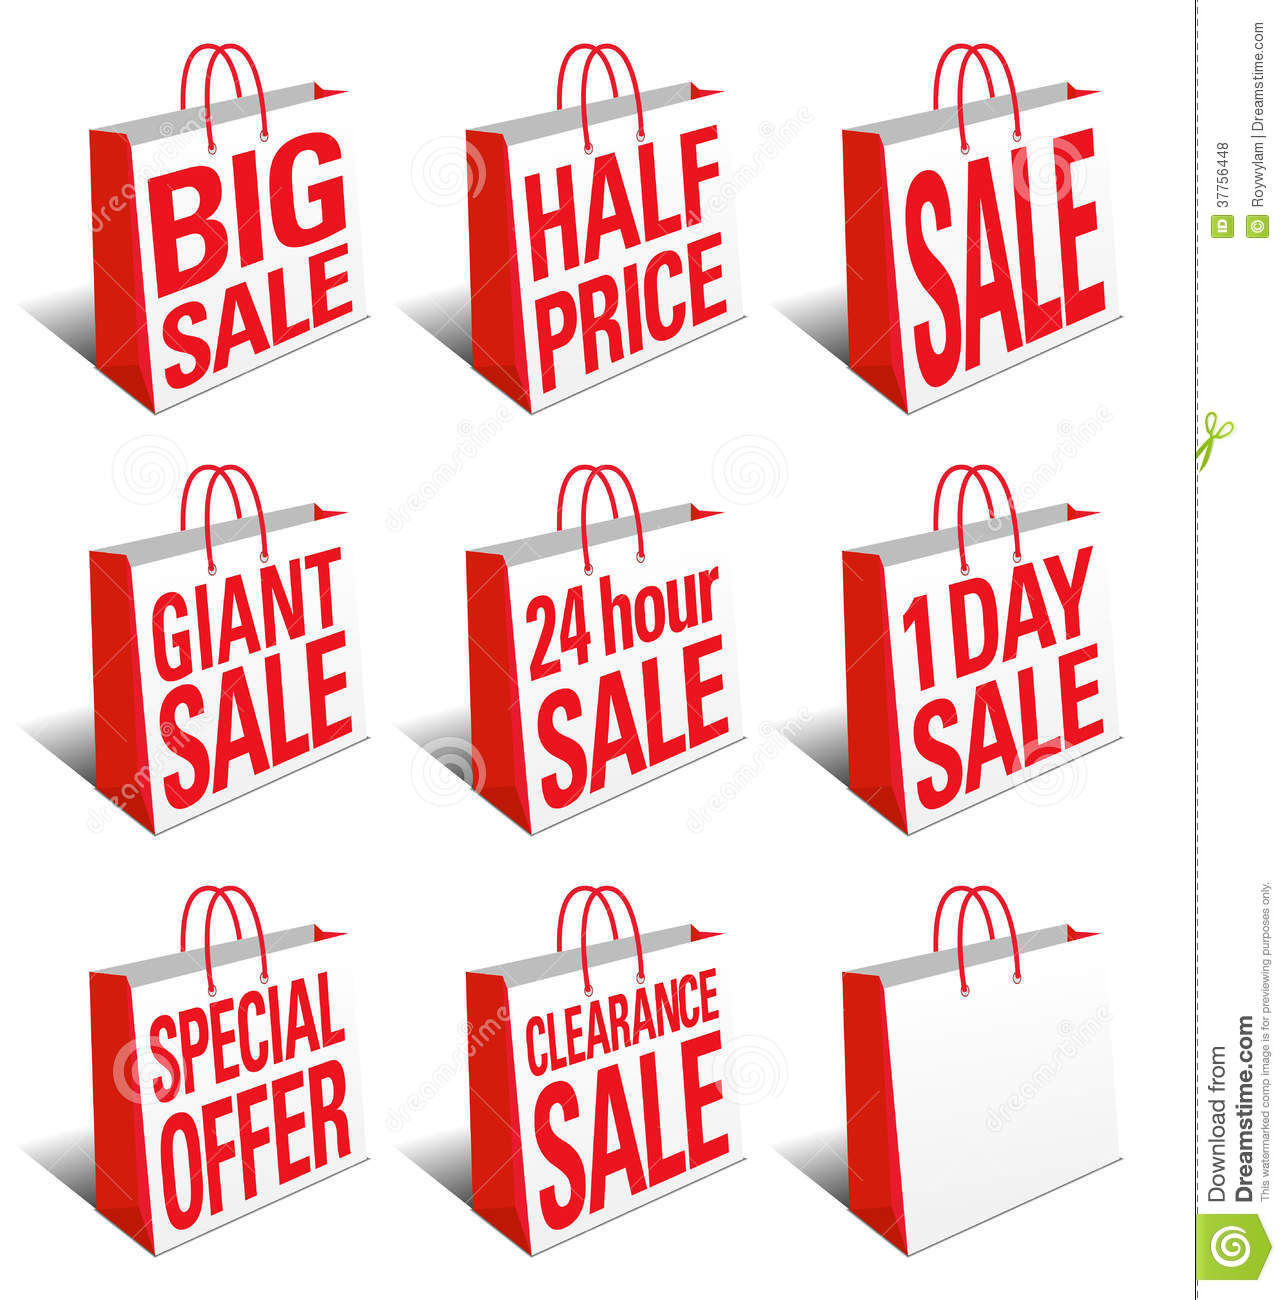 SALE Shopping Bags Icon - Carrier Bag Symbol Royalty Free Stock ...